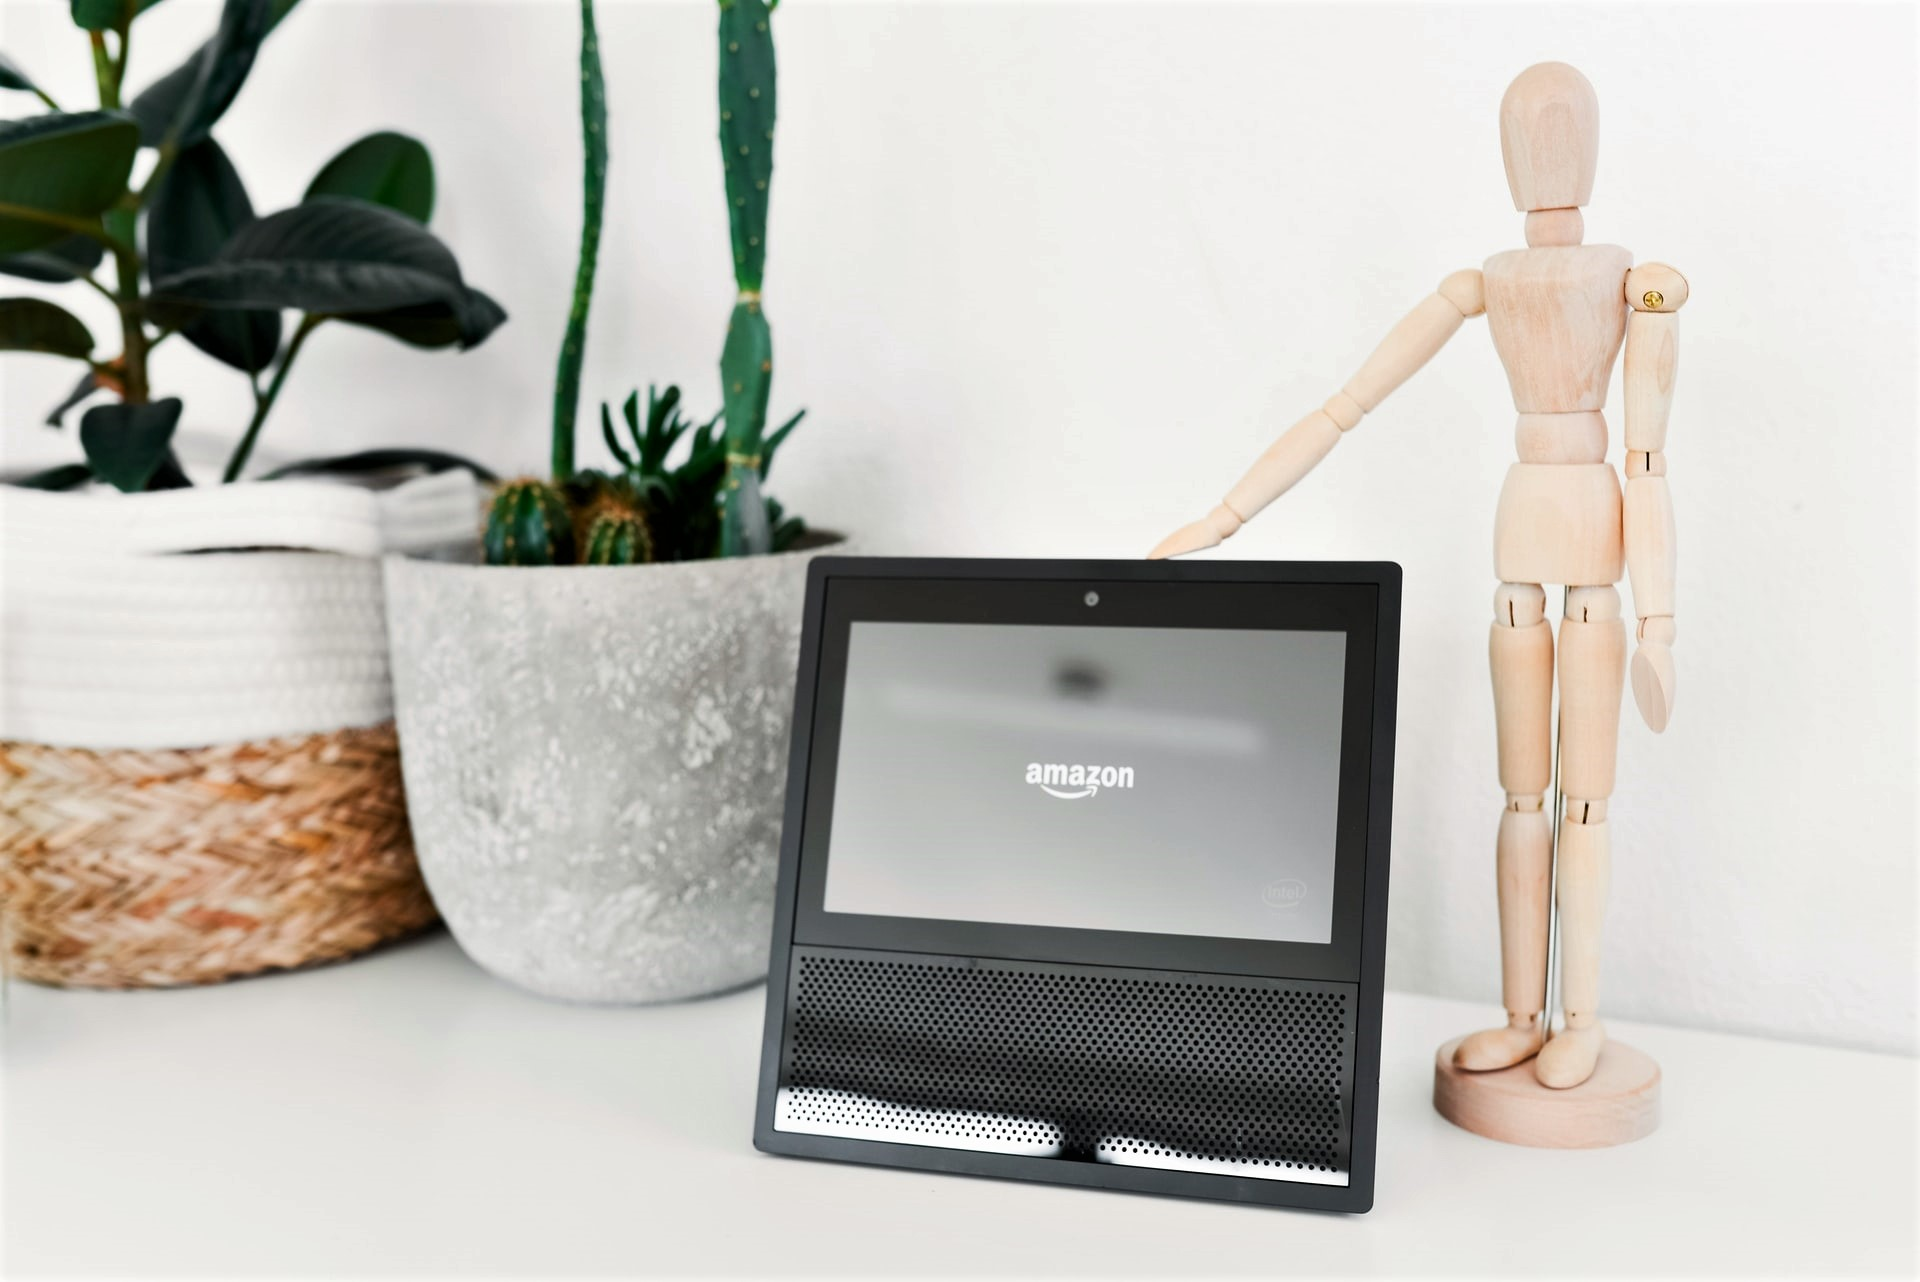 wooden mannequin standing next to an Echo show device on a white table.